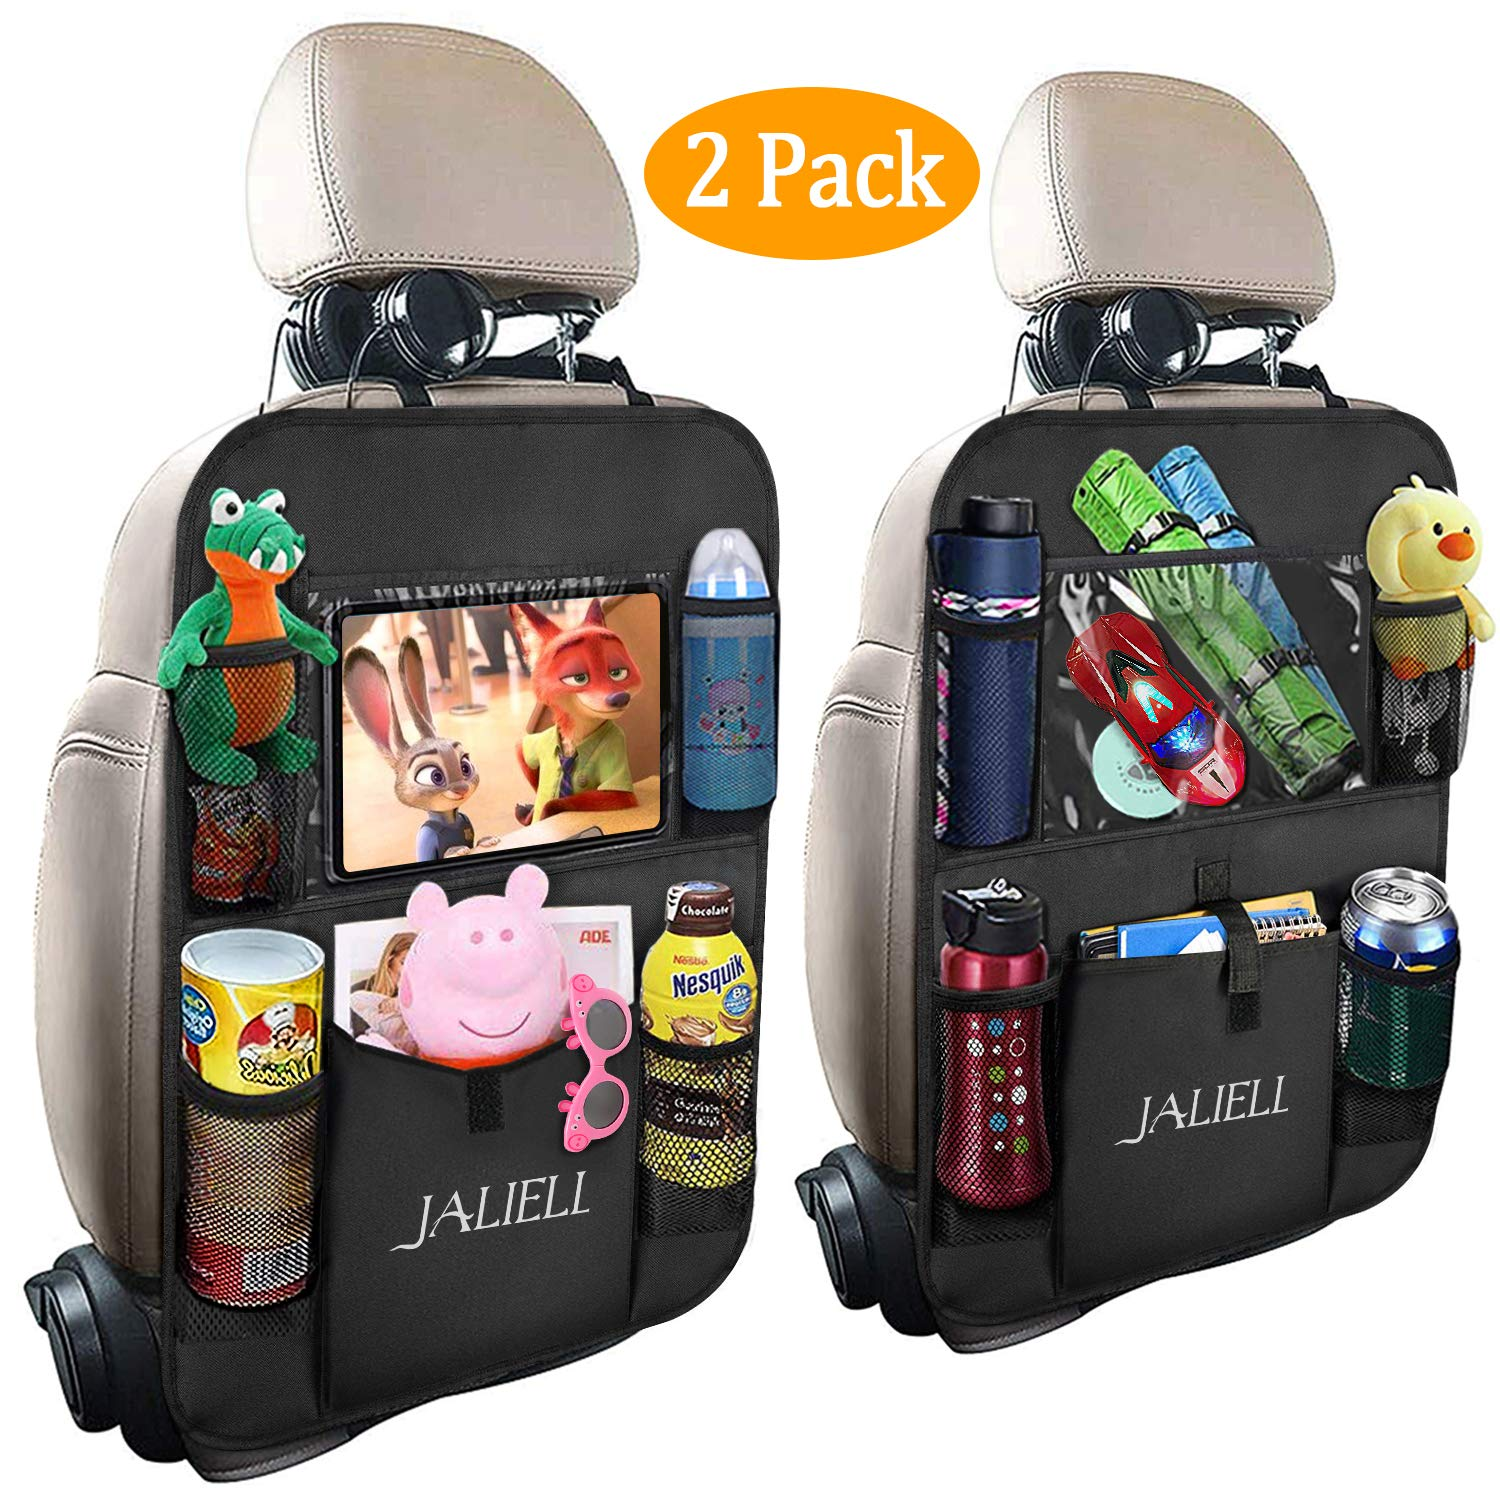 JALIELL Car Organizer Back Seat - 2019 Newest Car Seat Organizer with Clear 10'' Tablet Holder + 5 Storage Pockets + USB/Headphone Slits for Kids And Travel (2 Pack) by JALIELL